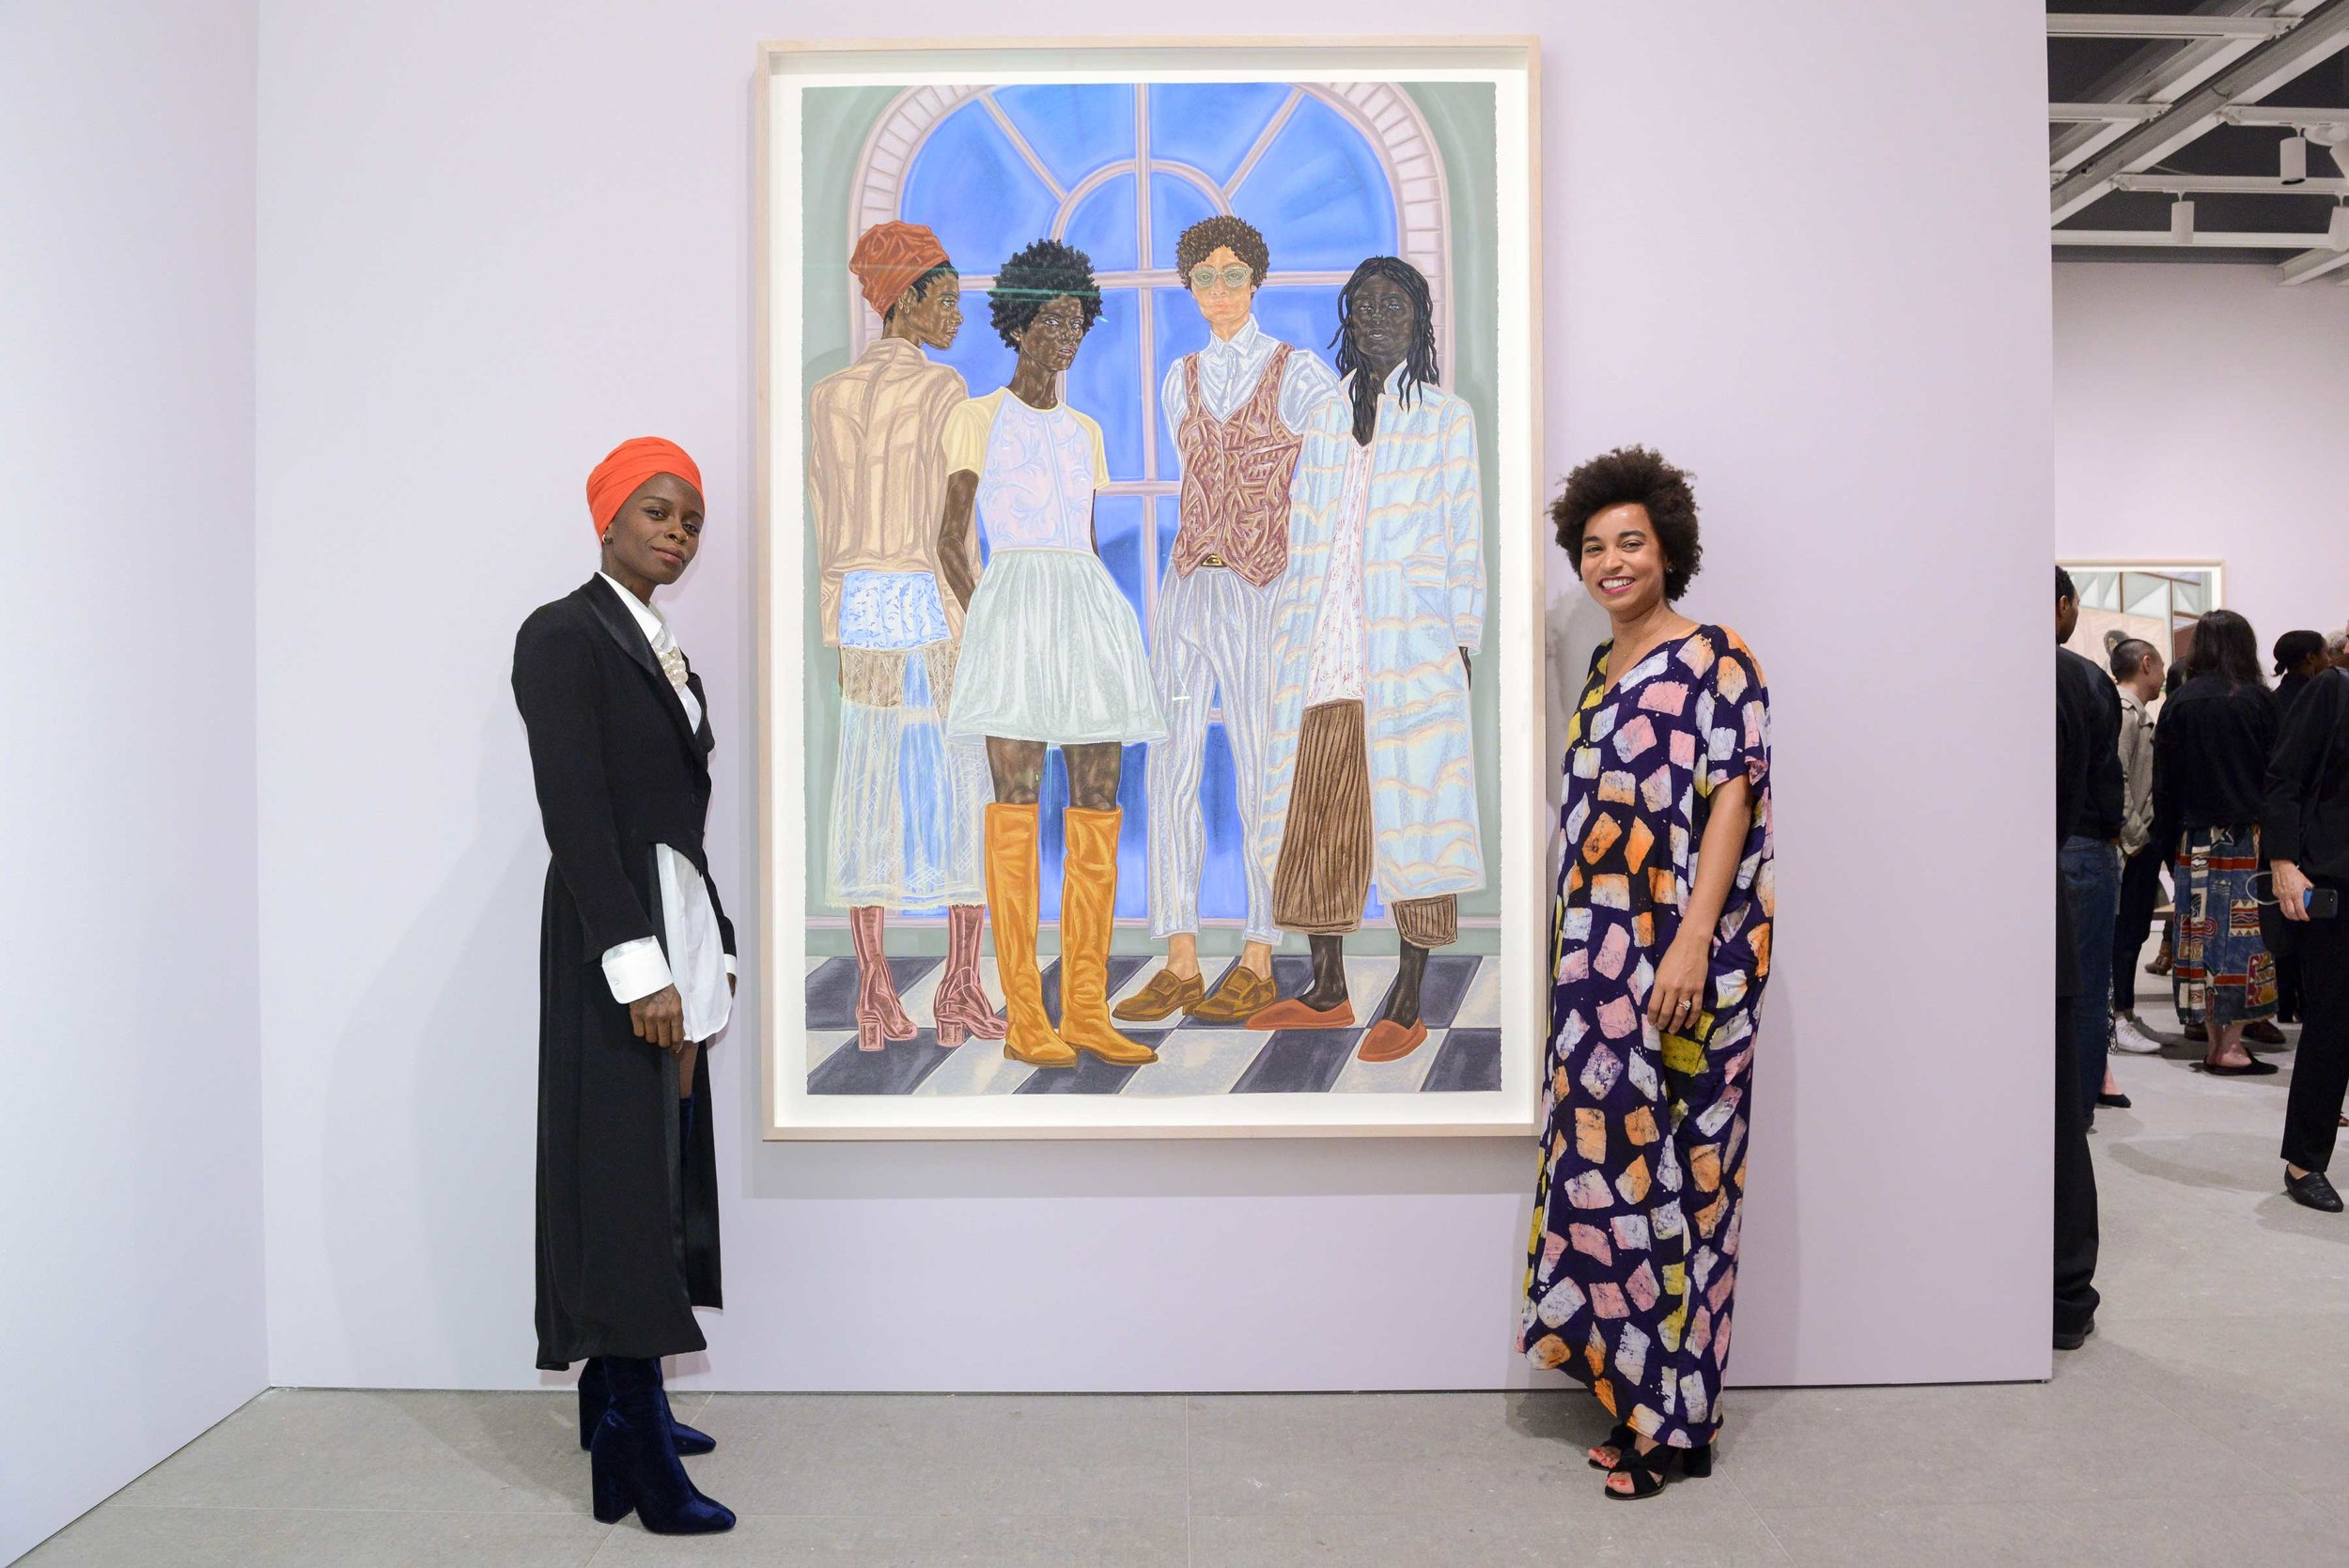 Artist Toyin Ojih Odutola (left) and Curator Rujeko Hockley (right), To Wander Determined  exhibition.Photography by © MatthewCarasella.com